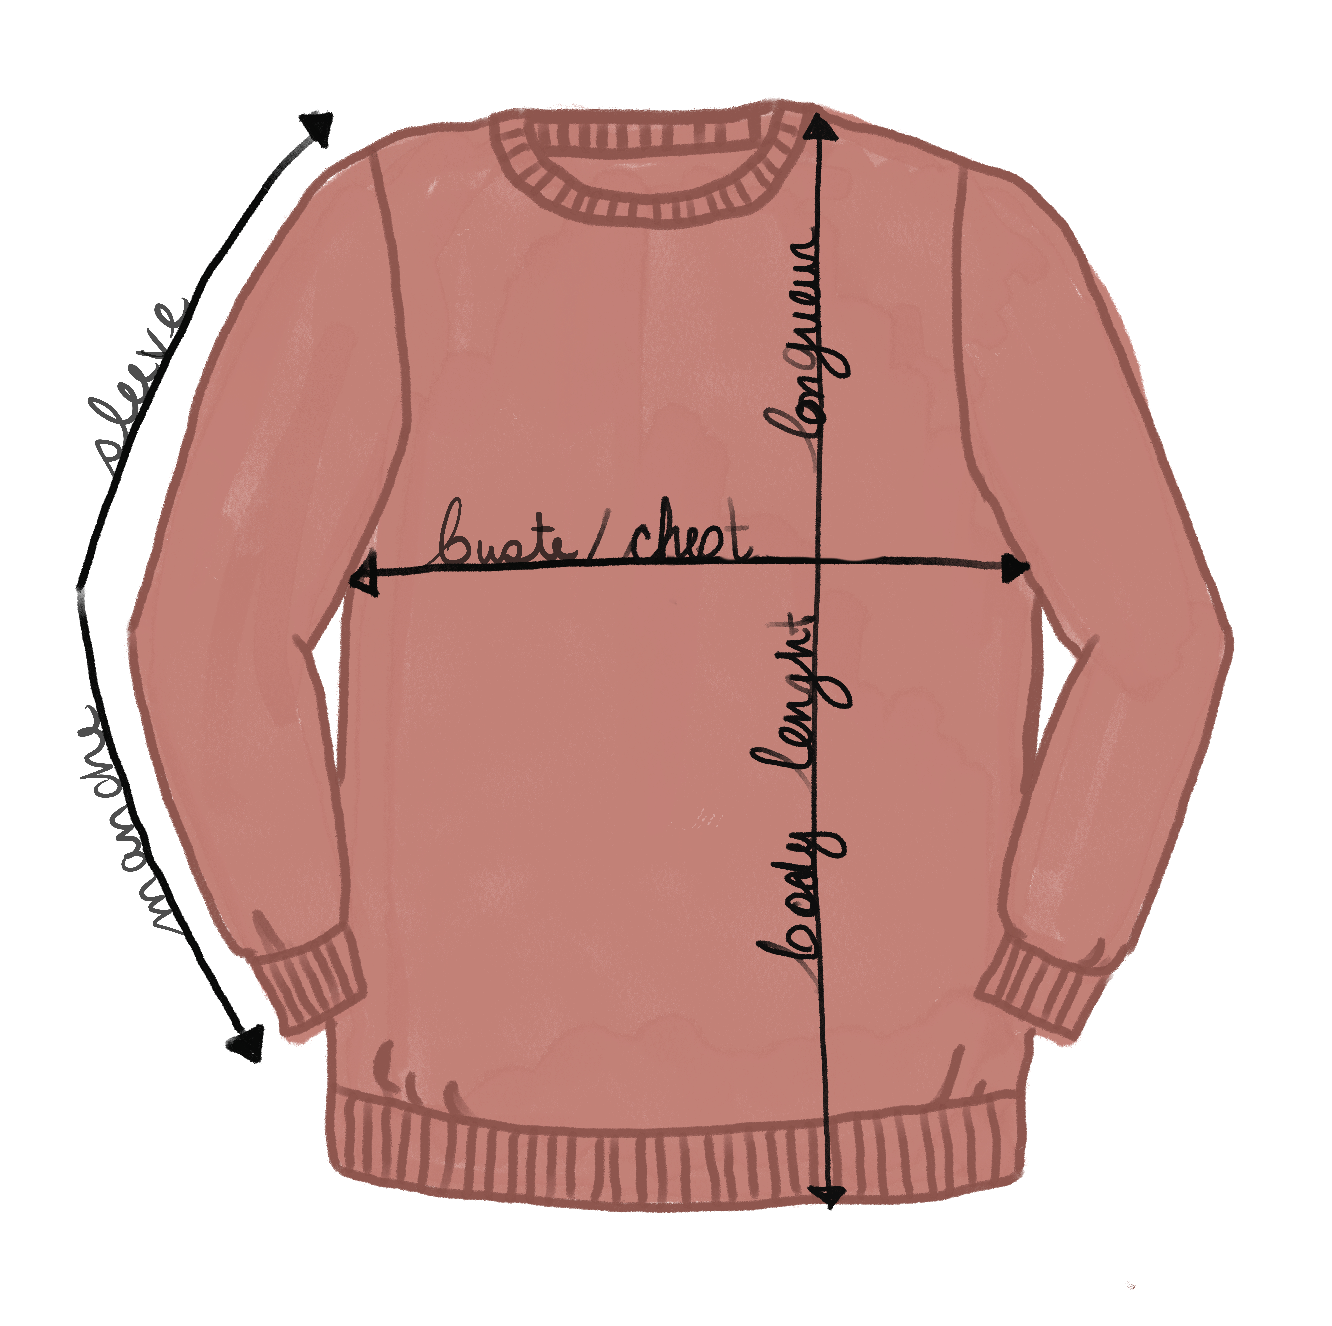 Sweatshirt size chart mimi & august